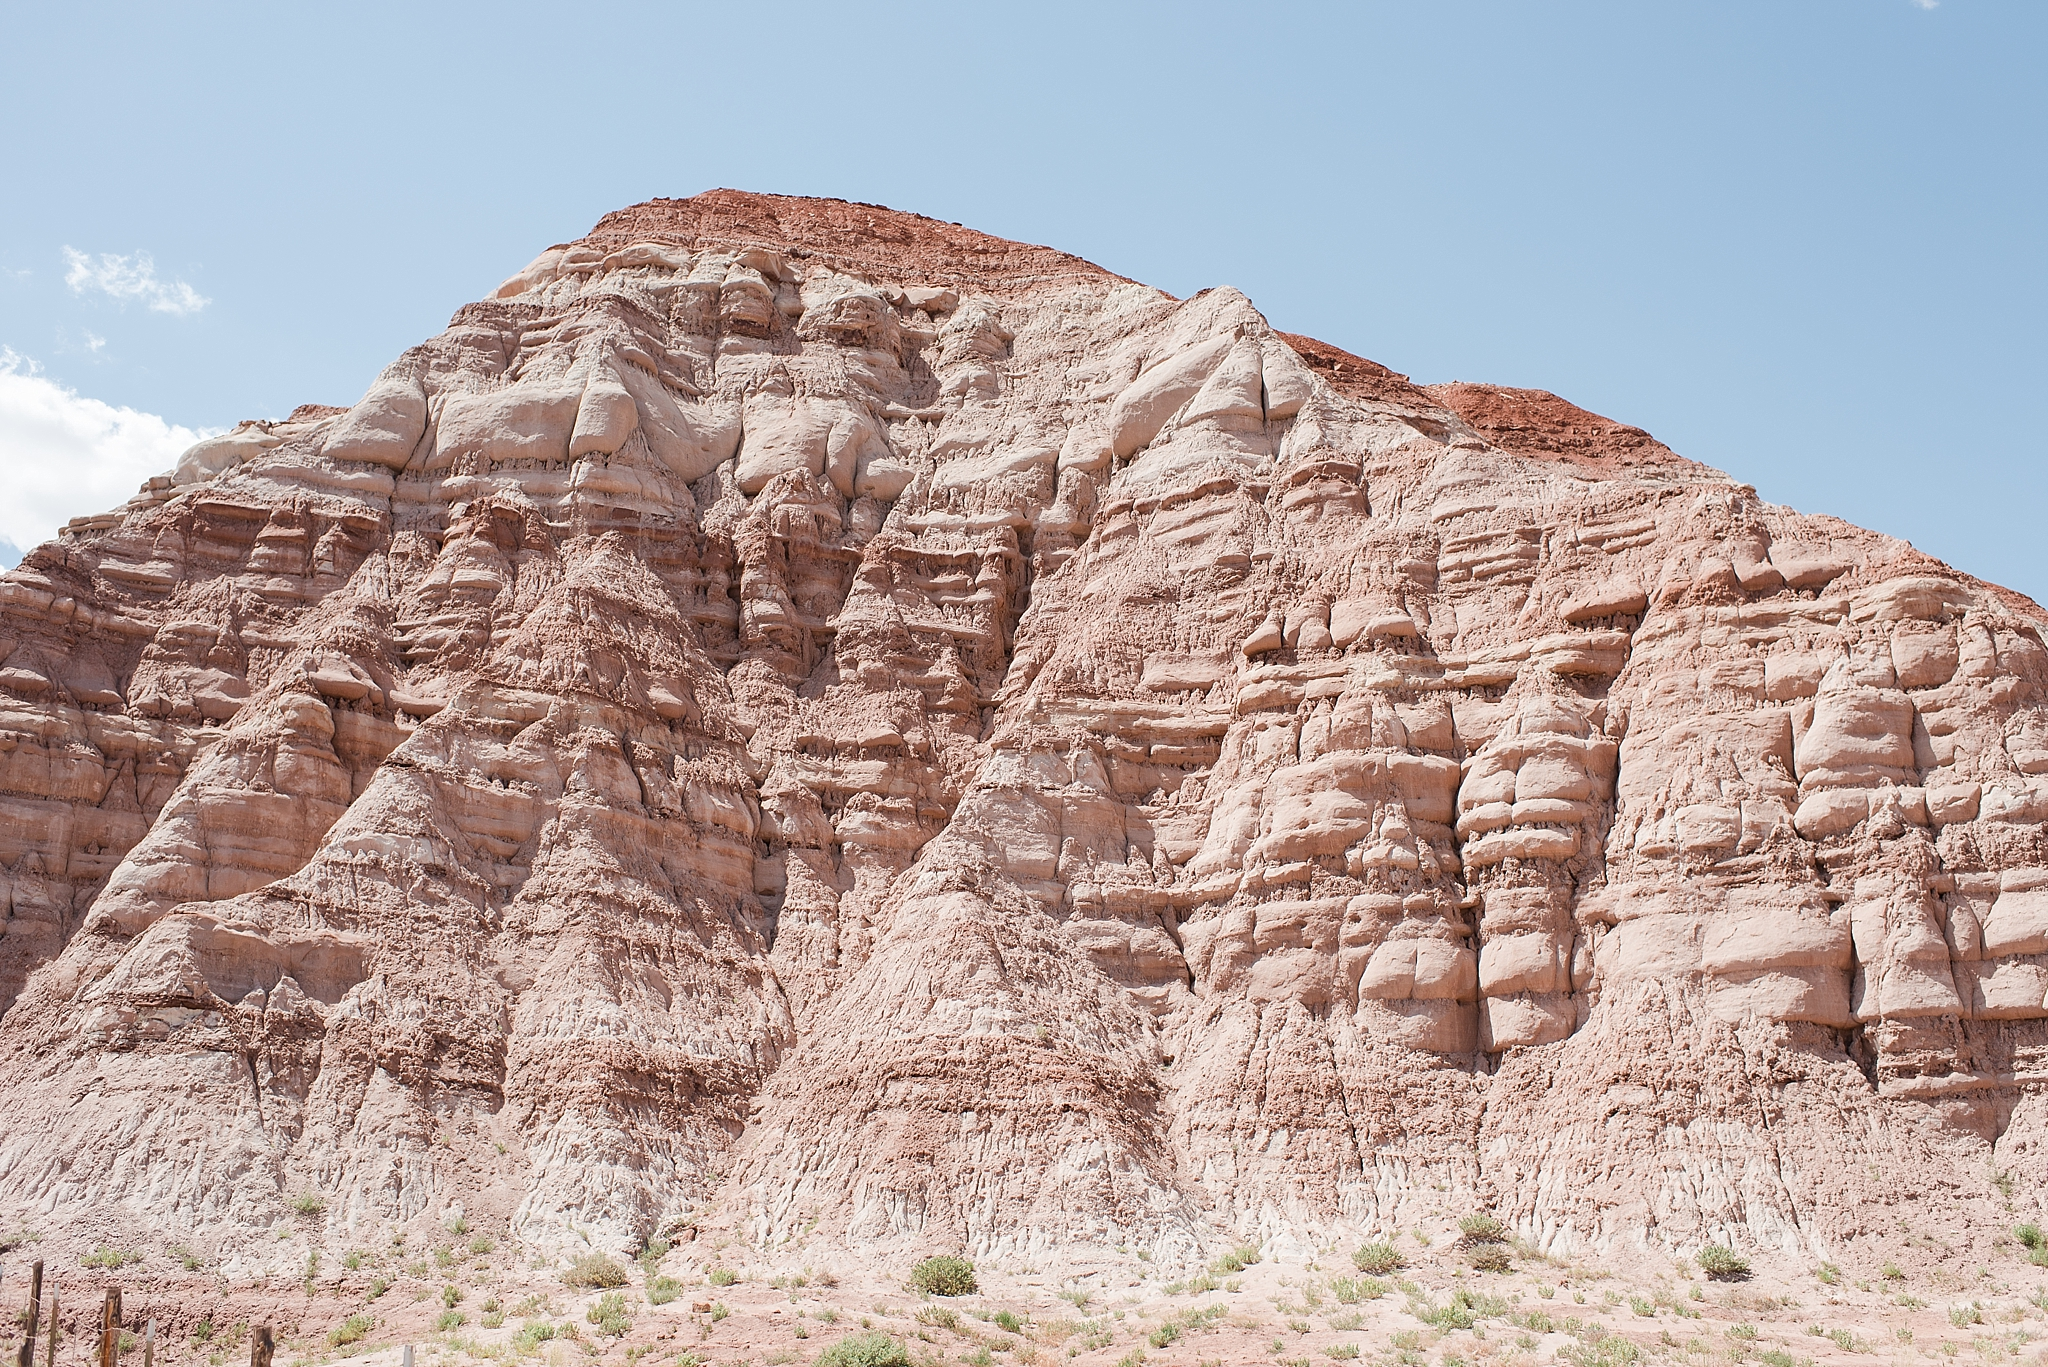 One of the many beautiful sights during our drive from Page to Utah. This reminds us of Mount Rushmore - can you see it?